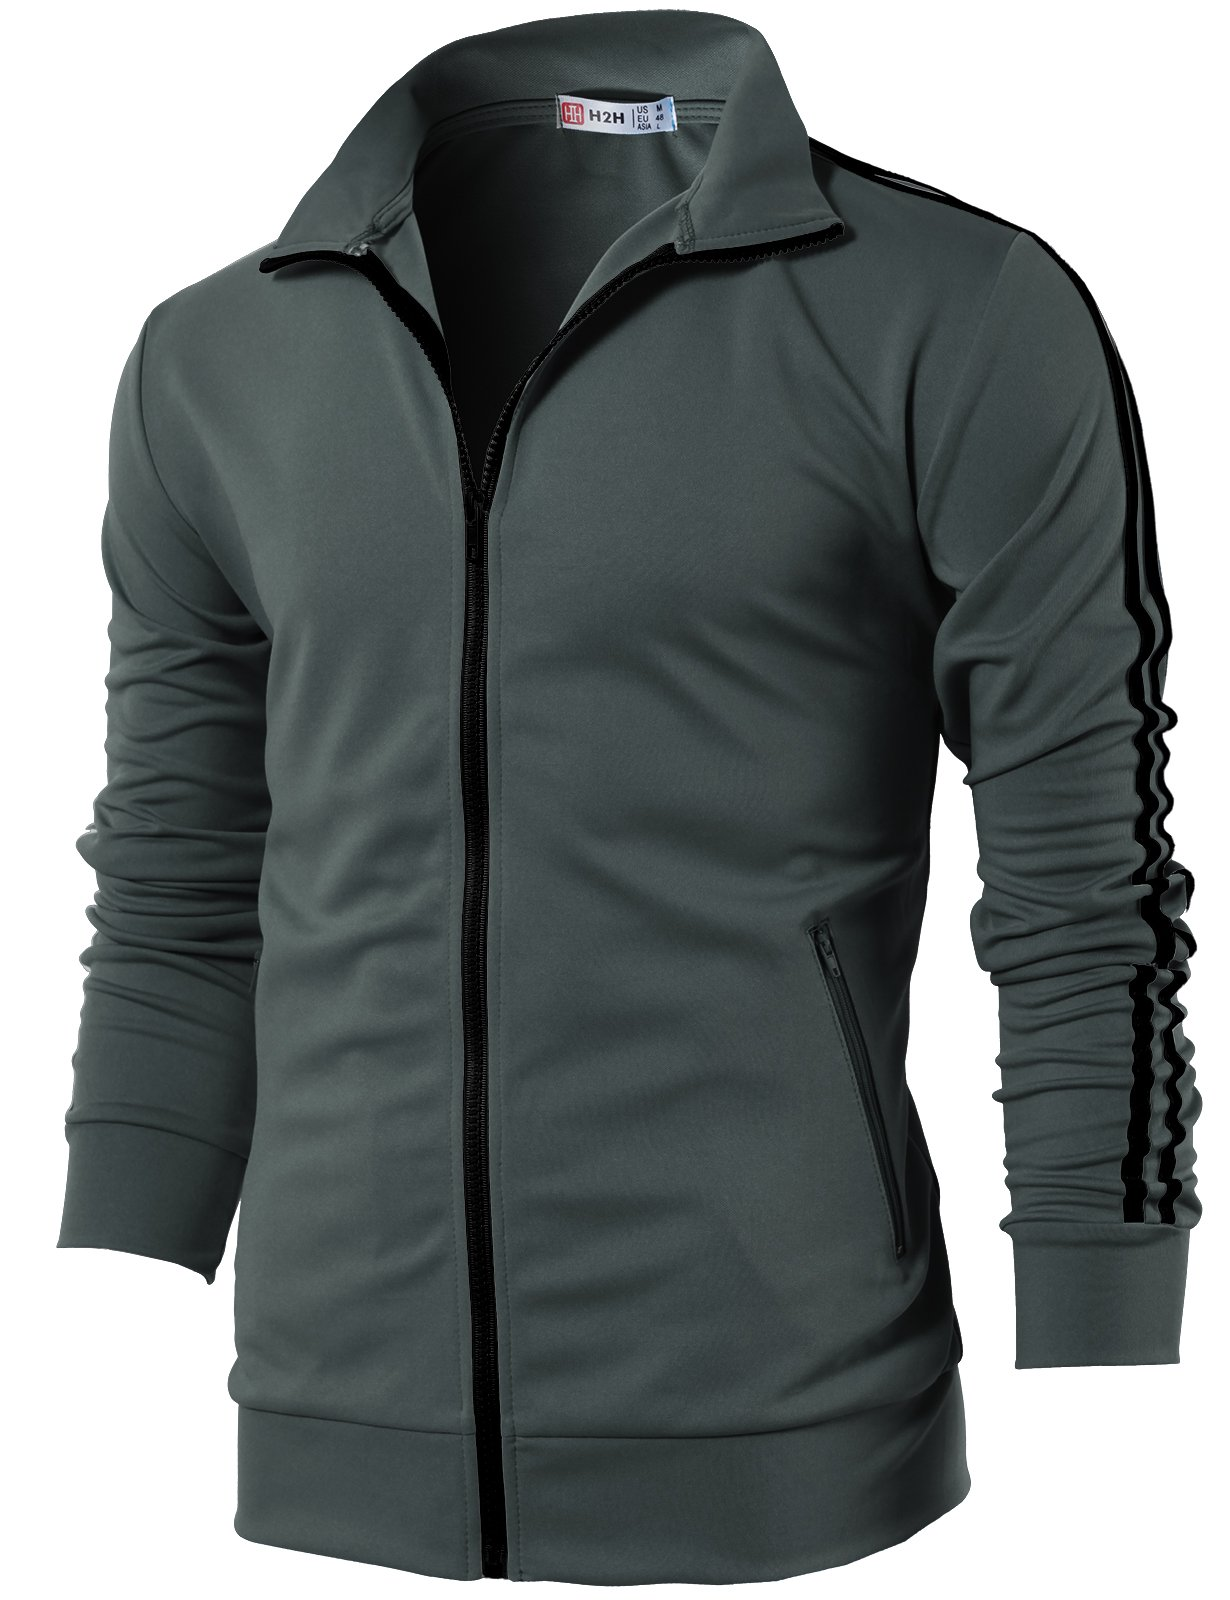 H2H Mens Active Slim Fit Lightweight Line Training Full Zip-up Jacket Charcoal US M/Asia L (CMOJA0103)